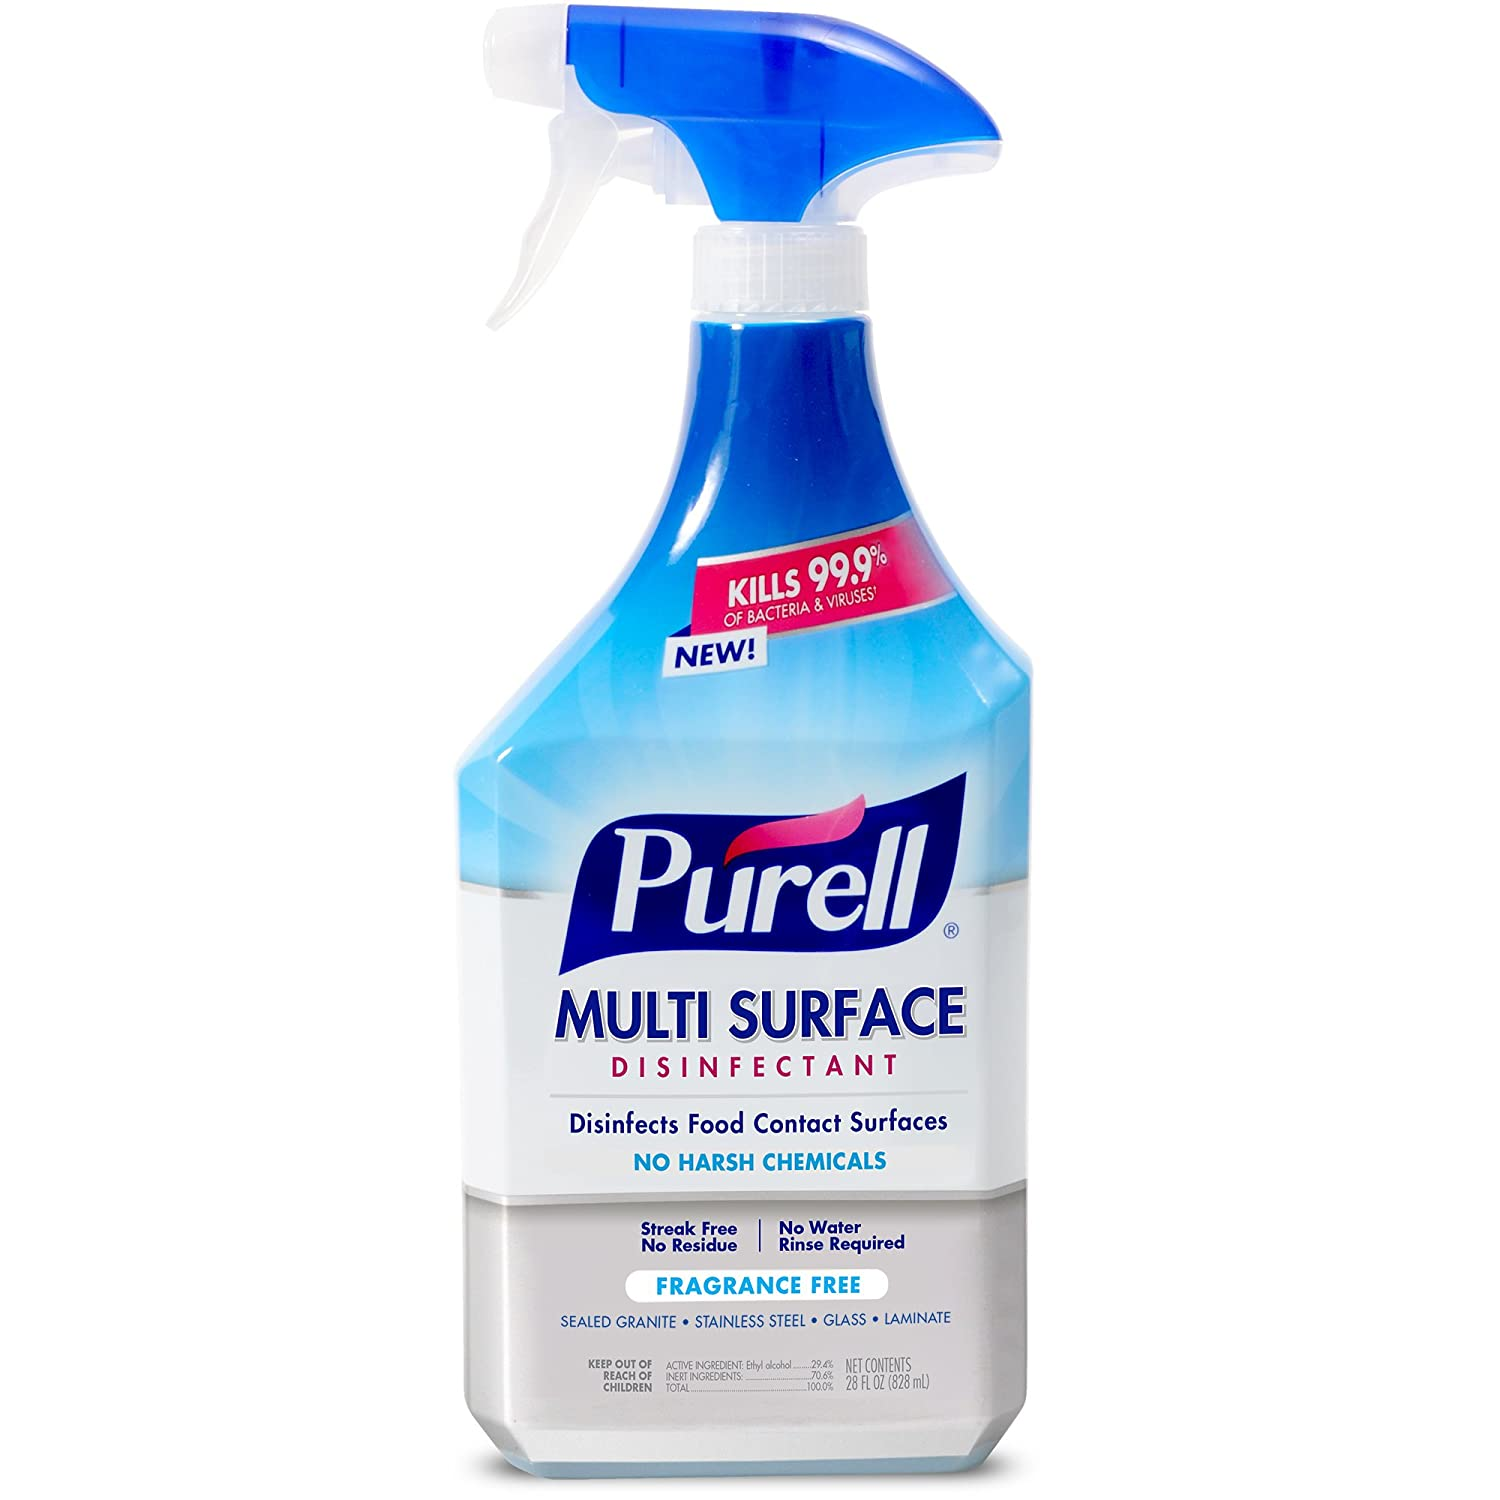 The purell multi-surface disinfectant spray